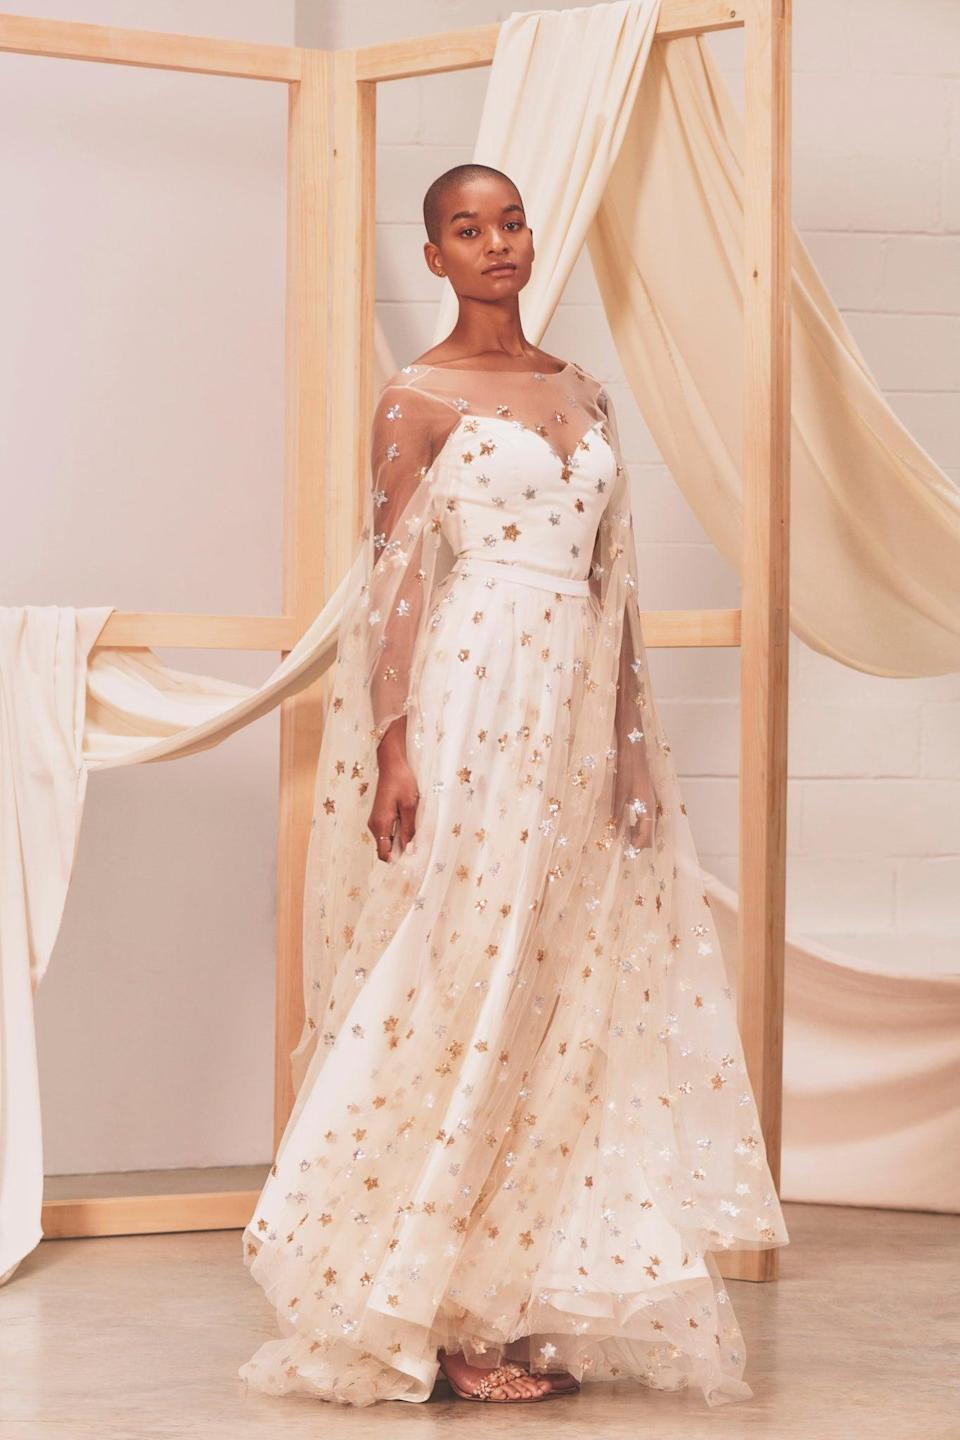 """<h3><a href=""""https://www.etsy.com/listing/808483259/estelle-celestial-wedding-dress-bridalhttps://www.etsy.com/listing/808483259/estelle-celestial-wedding-dress-bridal"""" rel=""""nofollow noopener"""" target=""""_blank"""" data-ylk=""""slk:Celestial Wedding Dress"""" class=""""link rapid-noclick-resp"""">Celestial Wedding Dress</a></h3><br><em> Wedding Category Winner</em><br><br>Lithuania-based designer Inge Staylte creates a collection of ethereal bespoke garments that are made-to-measure, focusing on comfort and inclusive sizing. <br><br><strong>WardrobeByDulcinea</strong> Celestial Wedding Dress, $, available at <a href=""""https://go.skimresources.com/?id=30283X879131&url=https%3A%2F%2Fwww.etsy.com%2Flisting%2F808483259%2Festelle-celestial-wedding-dress-bridal"""" rel=""""nofollow noopener"""" target=""""_blank"""" data-ylk=""""slk:Etsy"""" class=""""link rapid-noclick-resp"""">Etsy</a>"""